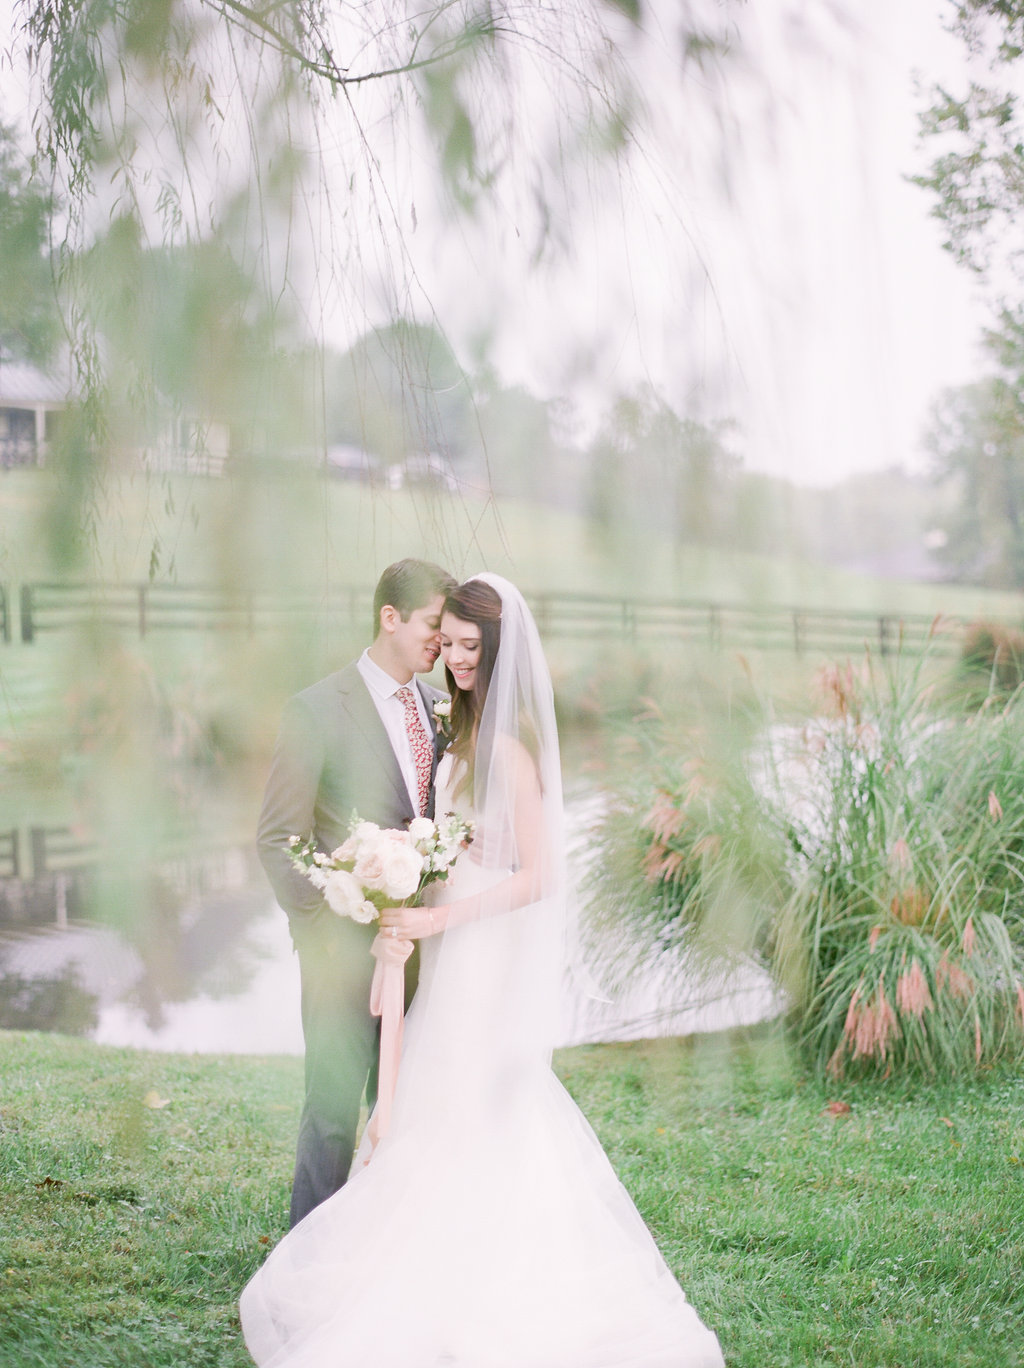 Virginia Countryside Fall Wedding by East Made Event Company fine art destination wedding planner and Julie Paisley Photography as featured on Style Me Pretty173.jpg